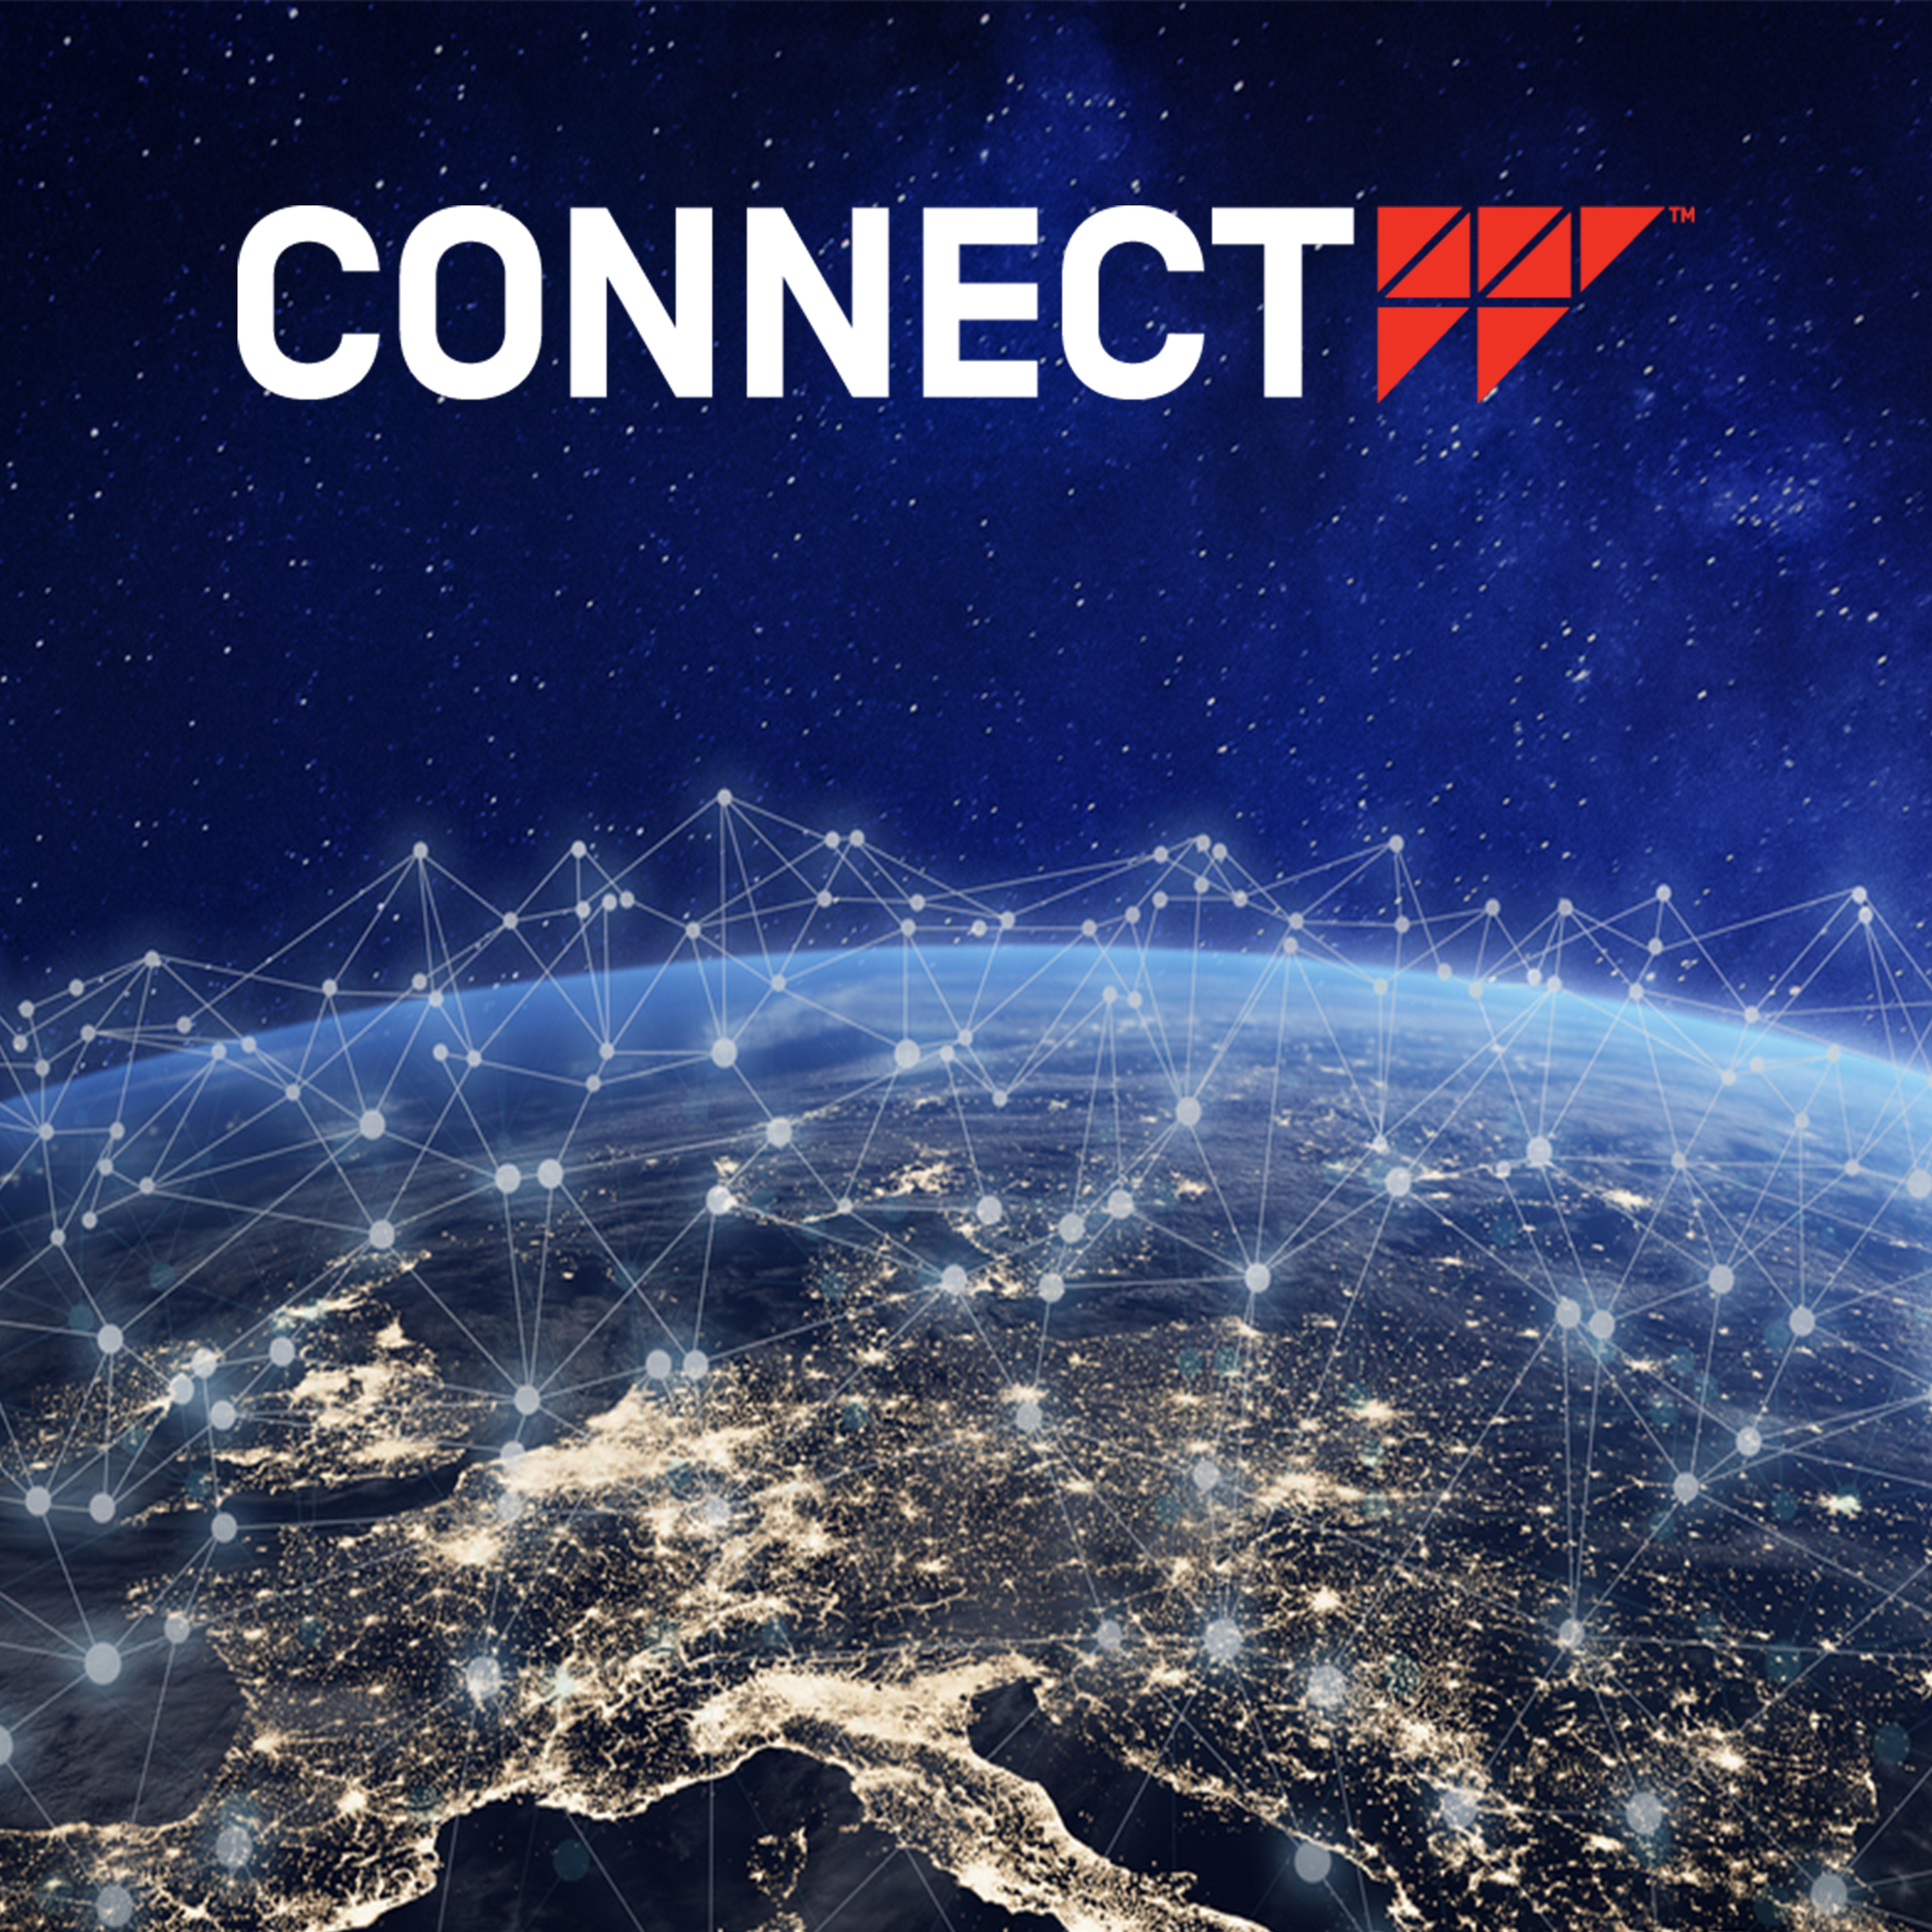 CONNECT44 Group has joined the Open RAN Alliance and Telecom Infra Project